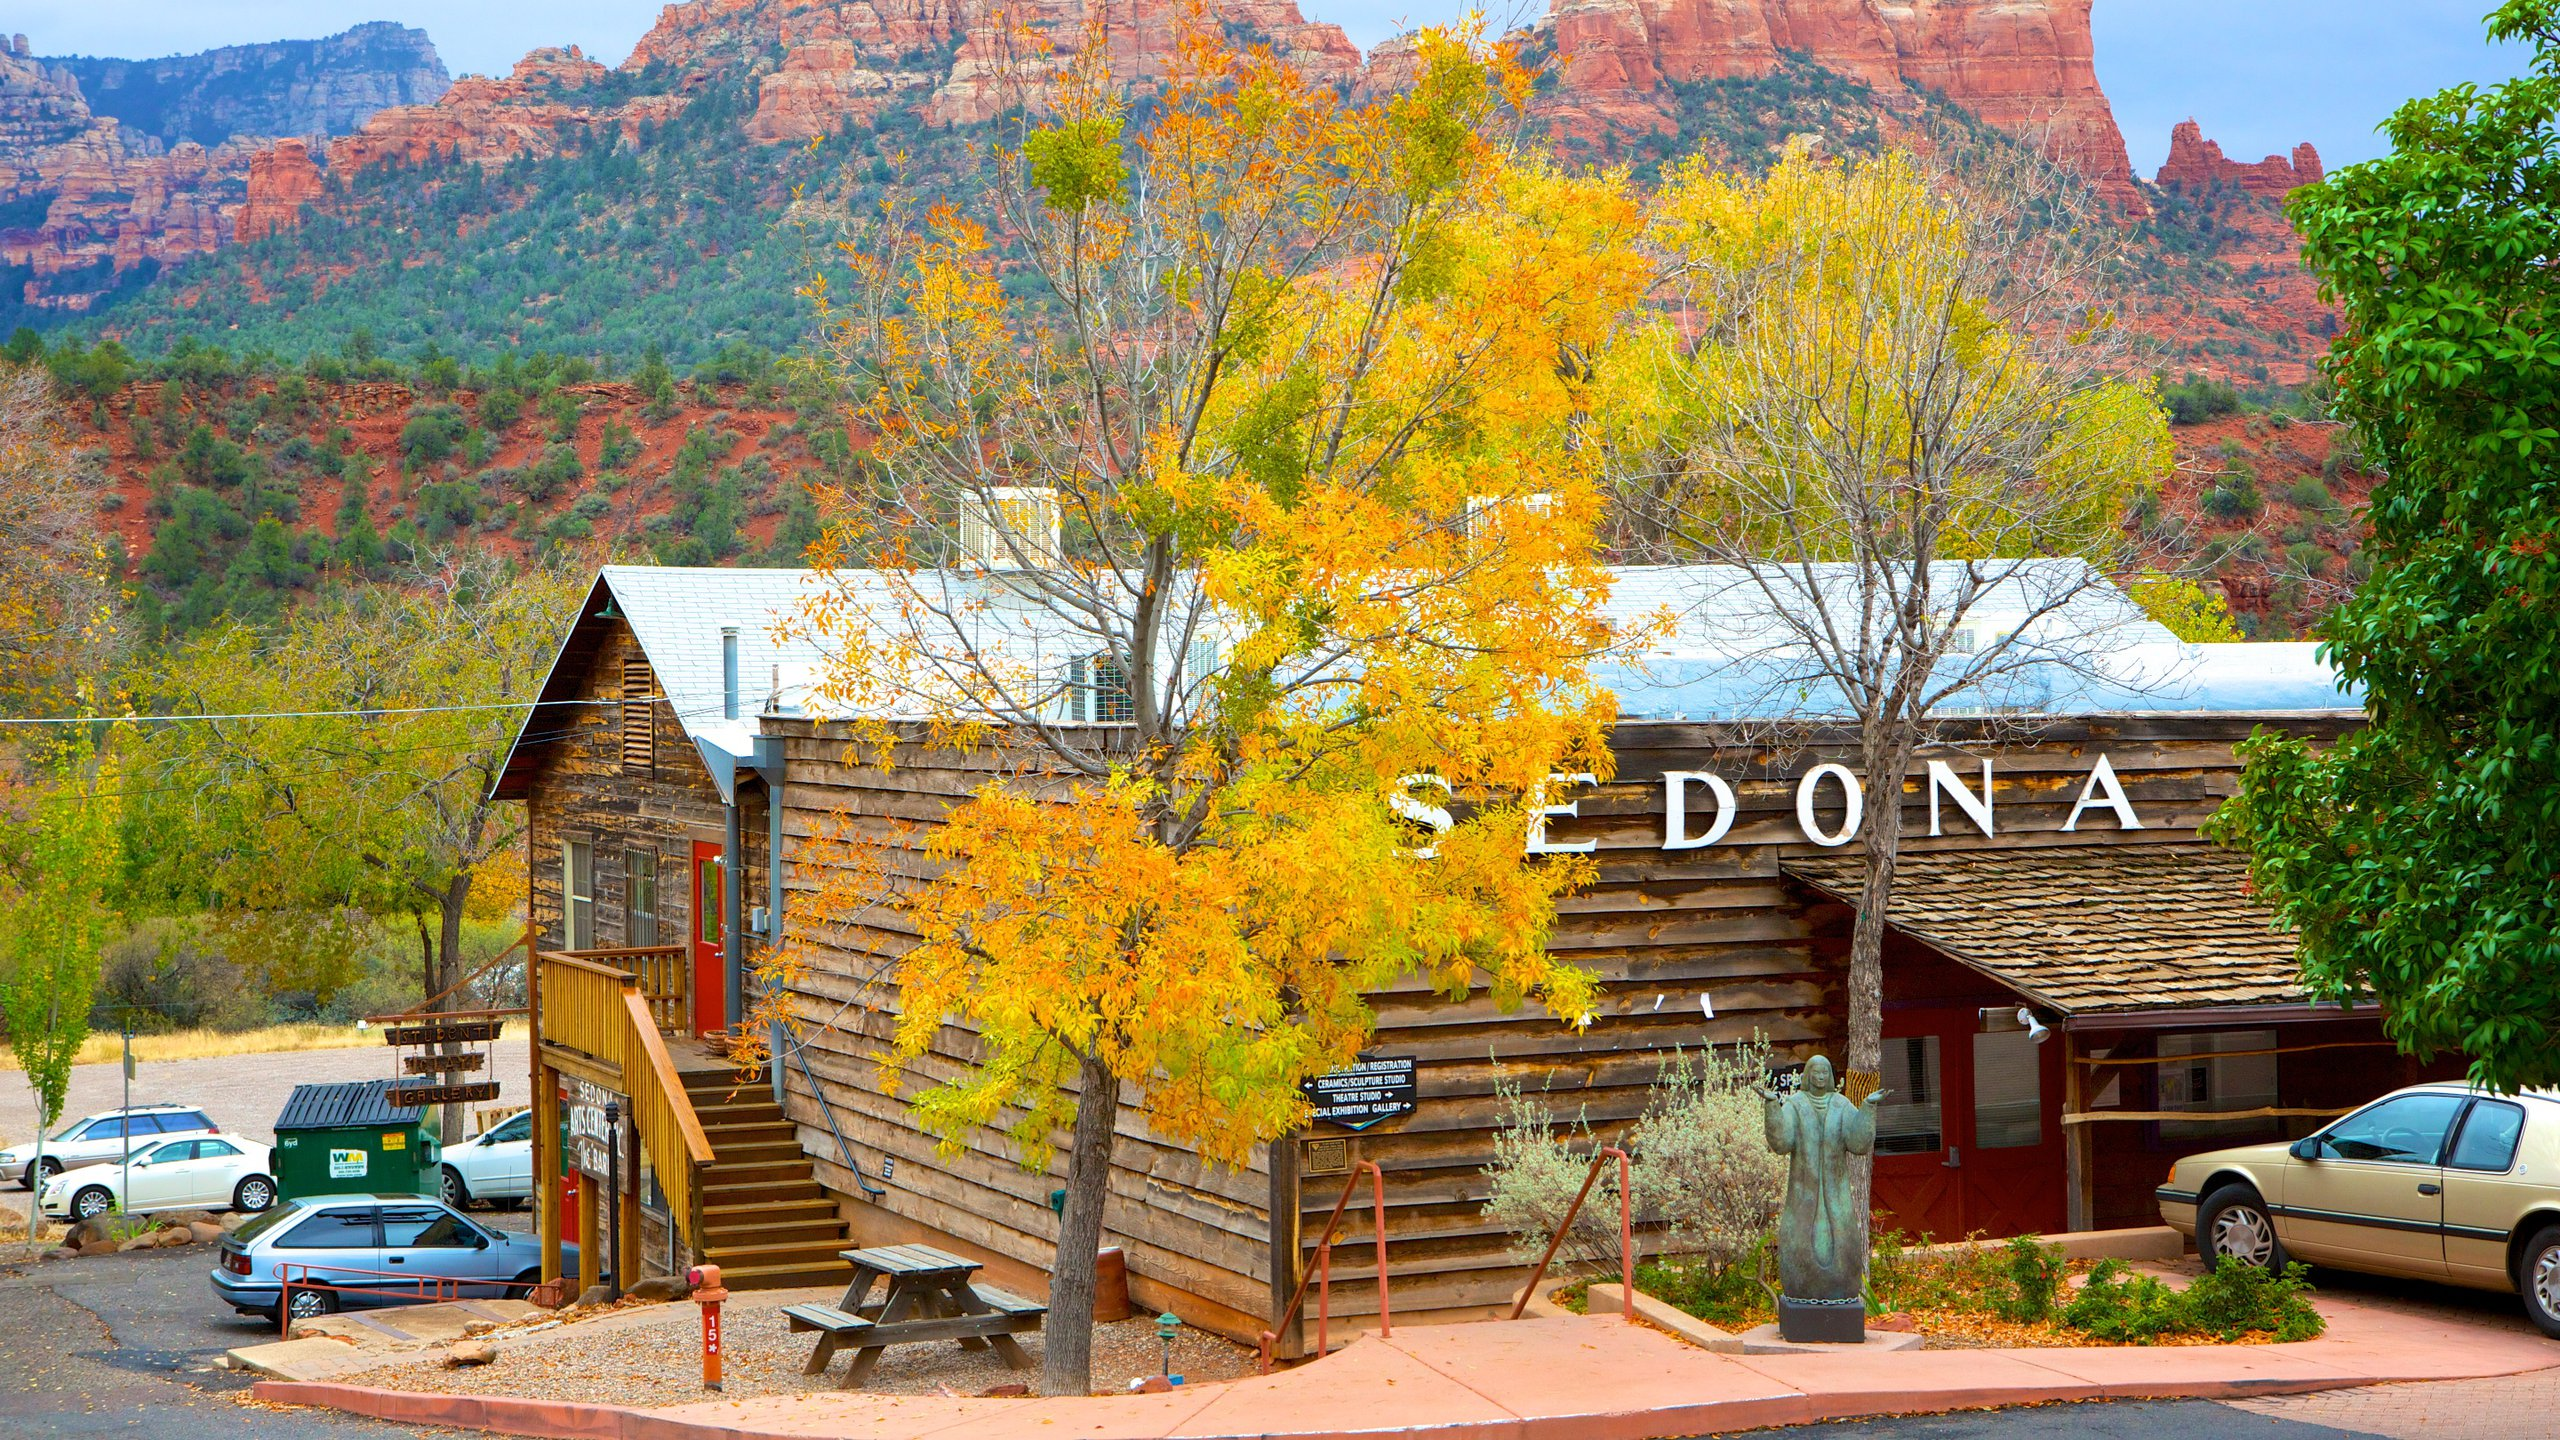 Experience Sedona's exciting arts scene through workshops, classes, exhibitions and events at this thriving hub showcasing the work of local and interstate artists.